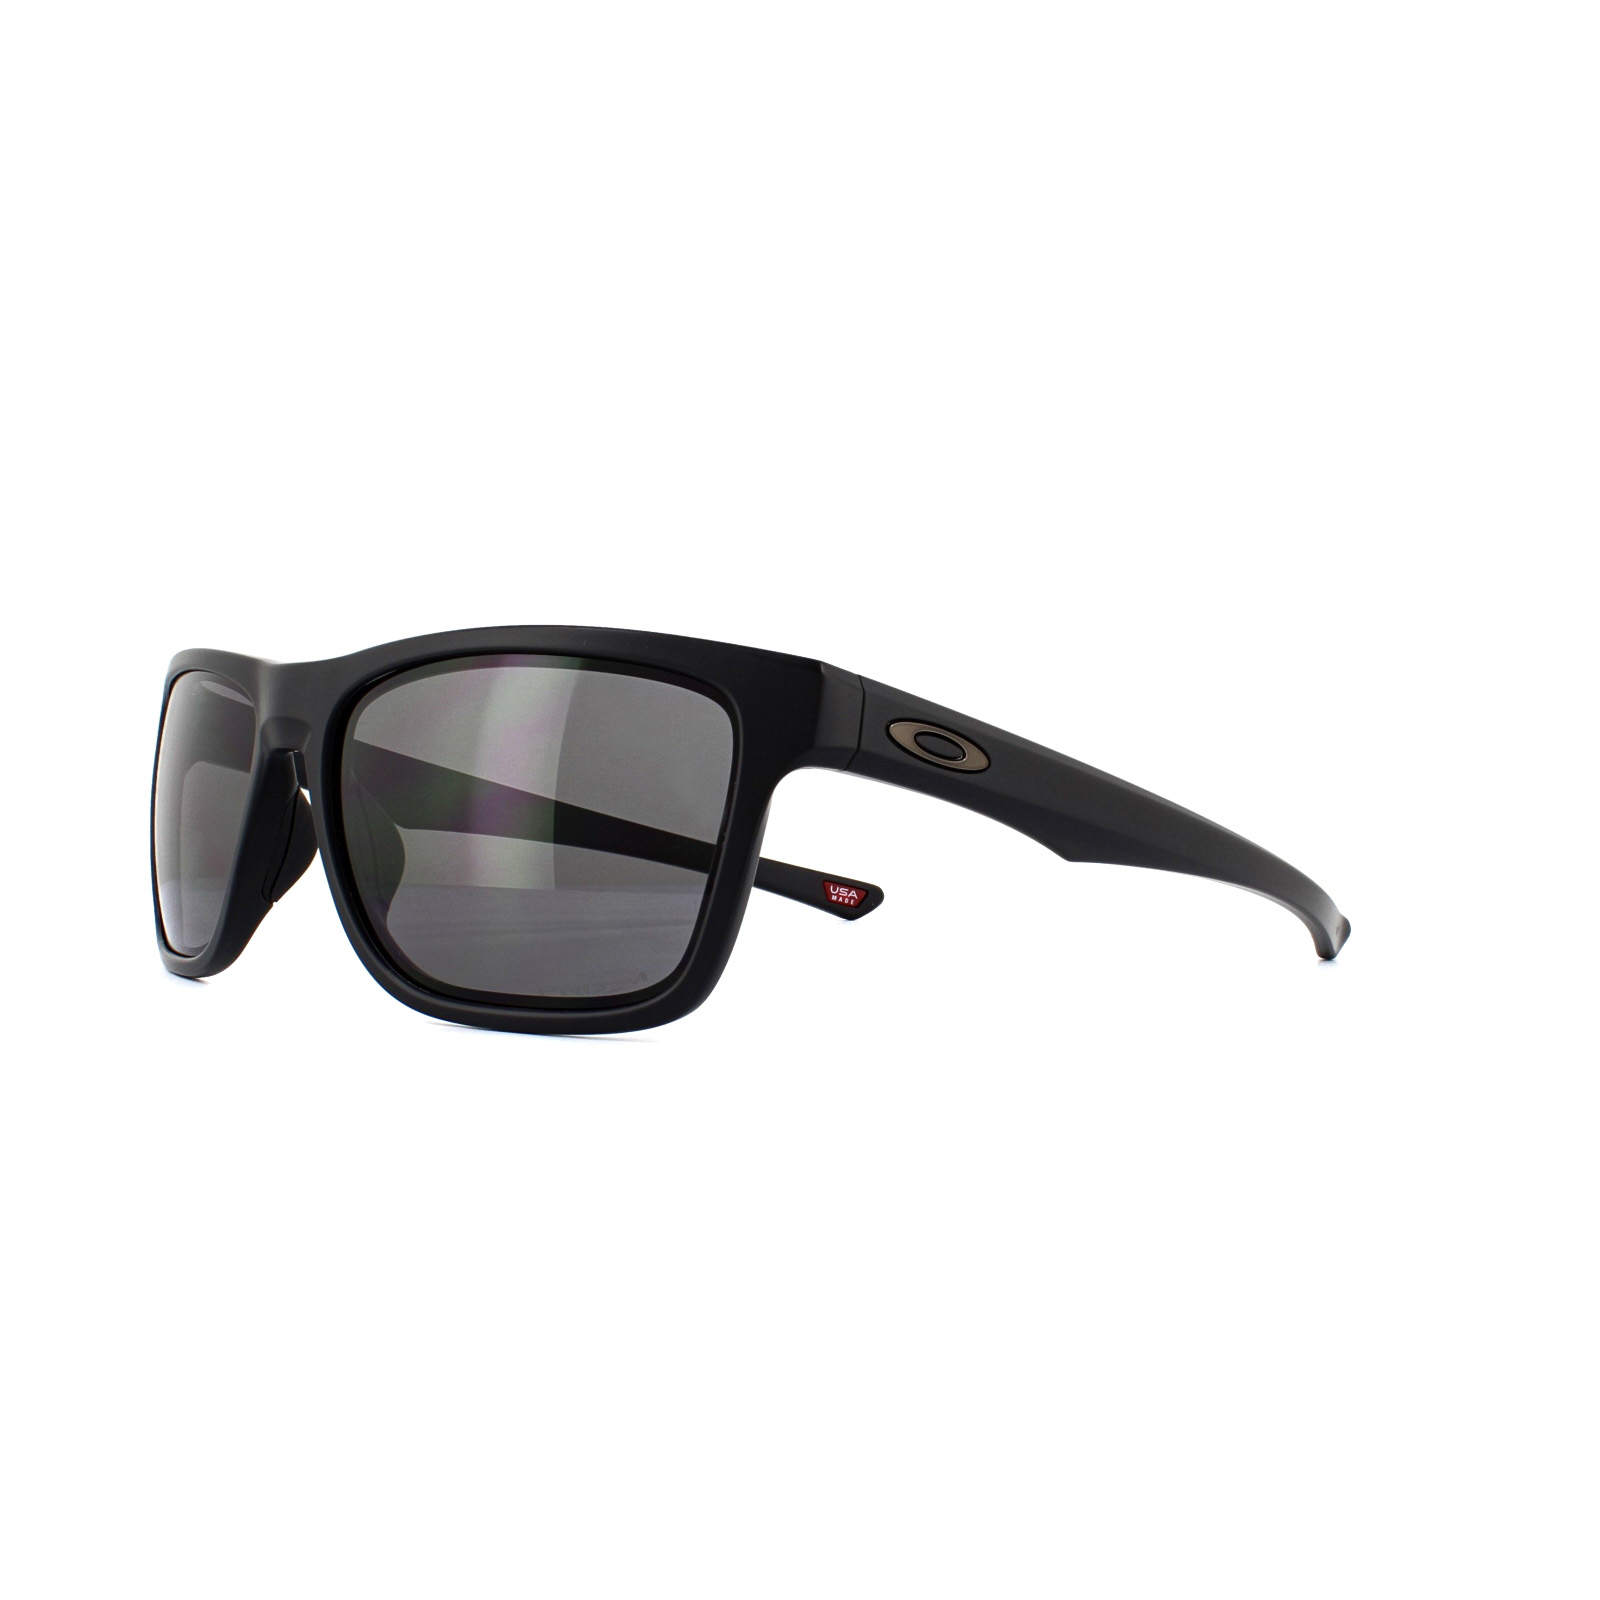 62459fba4bd Cheap Oakley Holston Sunglasses - Discounted Sunglasses